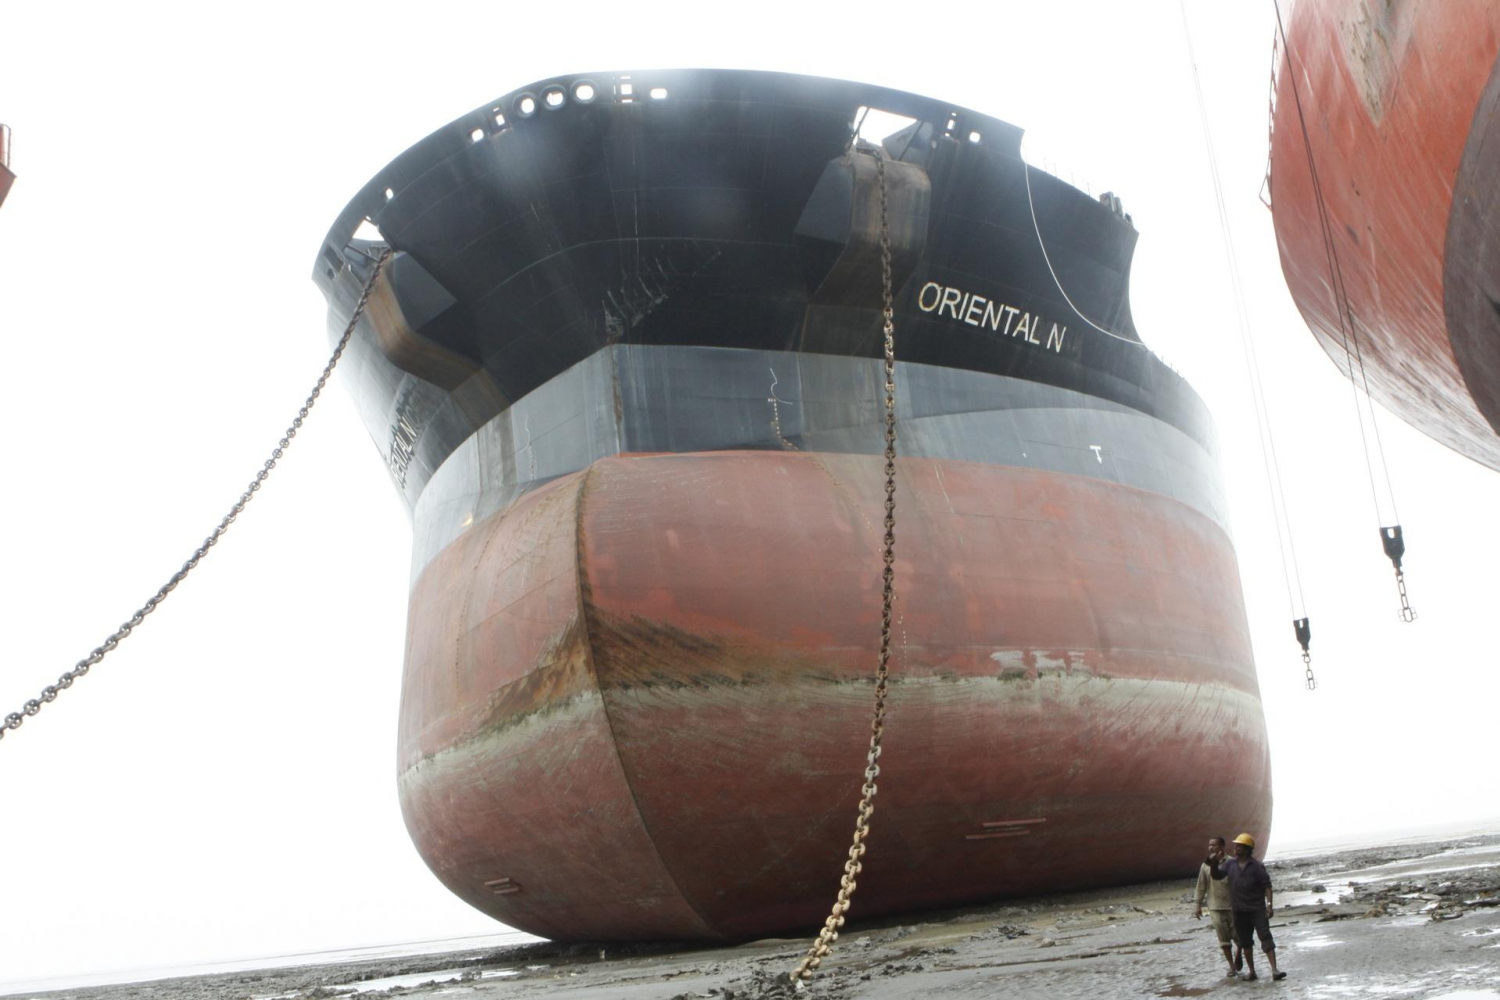 The Oriental N (a vessel that became notorious under the original name Exxon Valdez) ended up on one of the beach yards of Alang, India